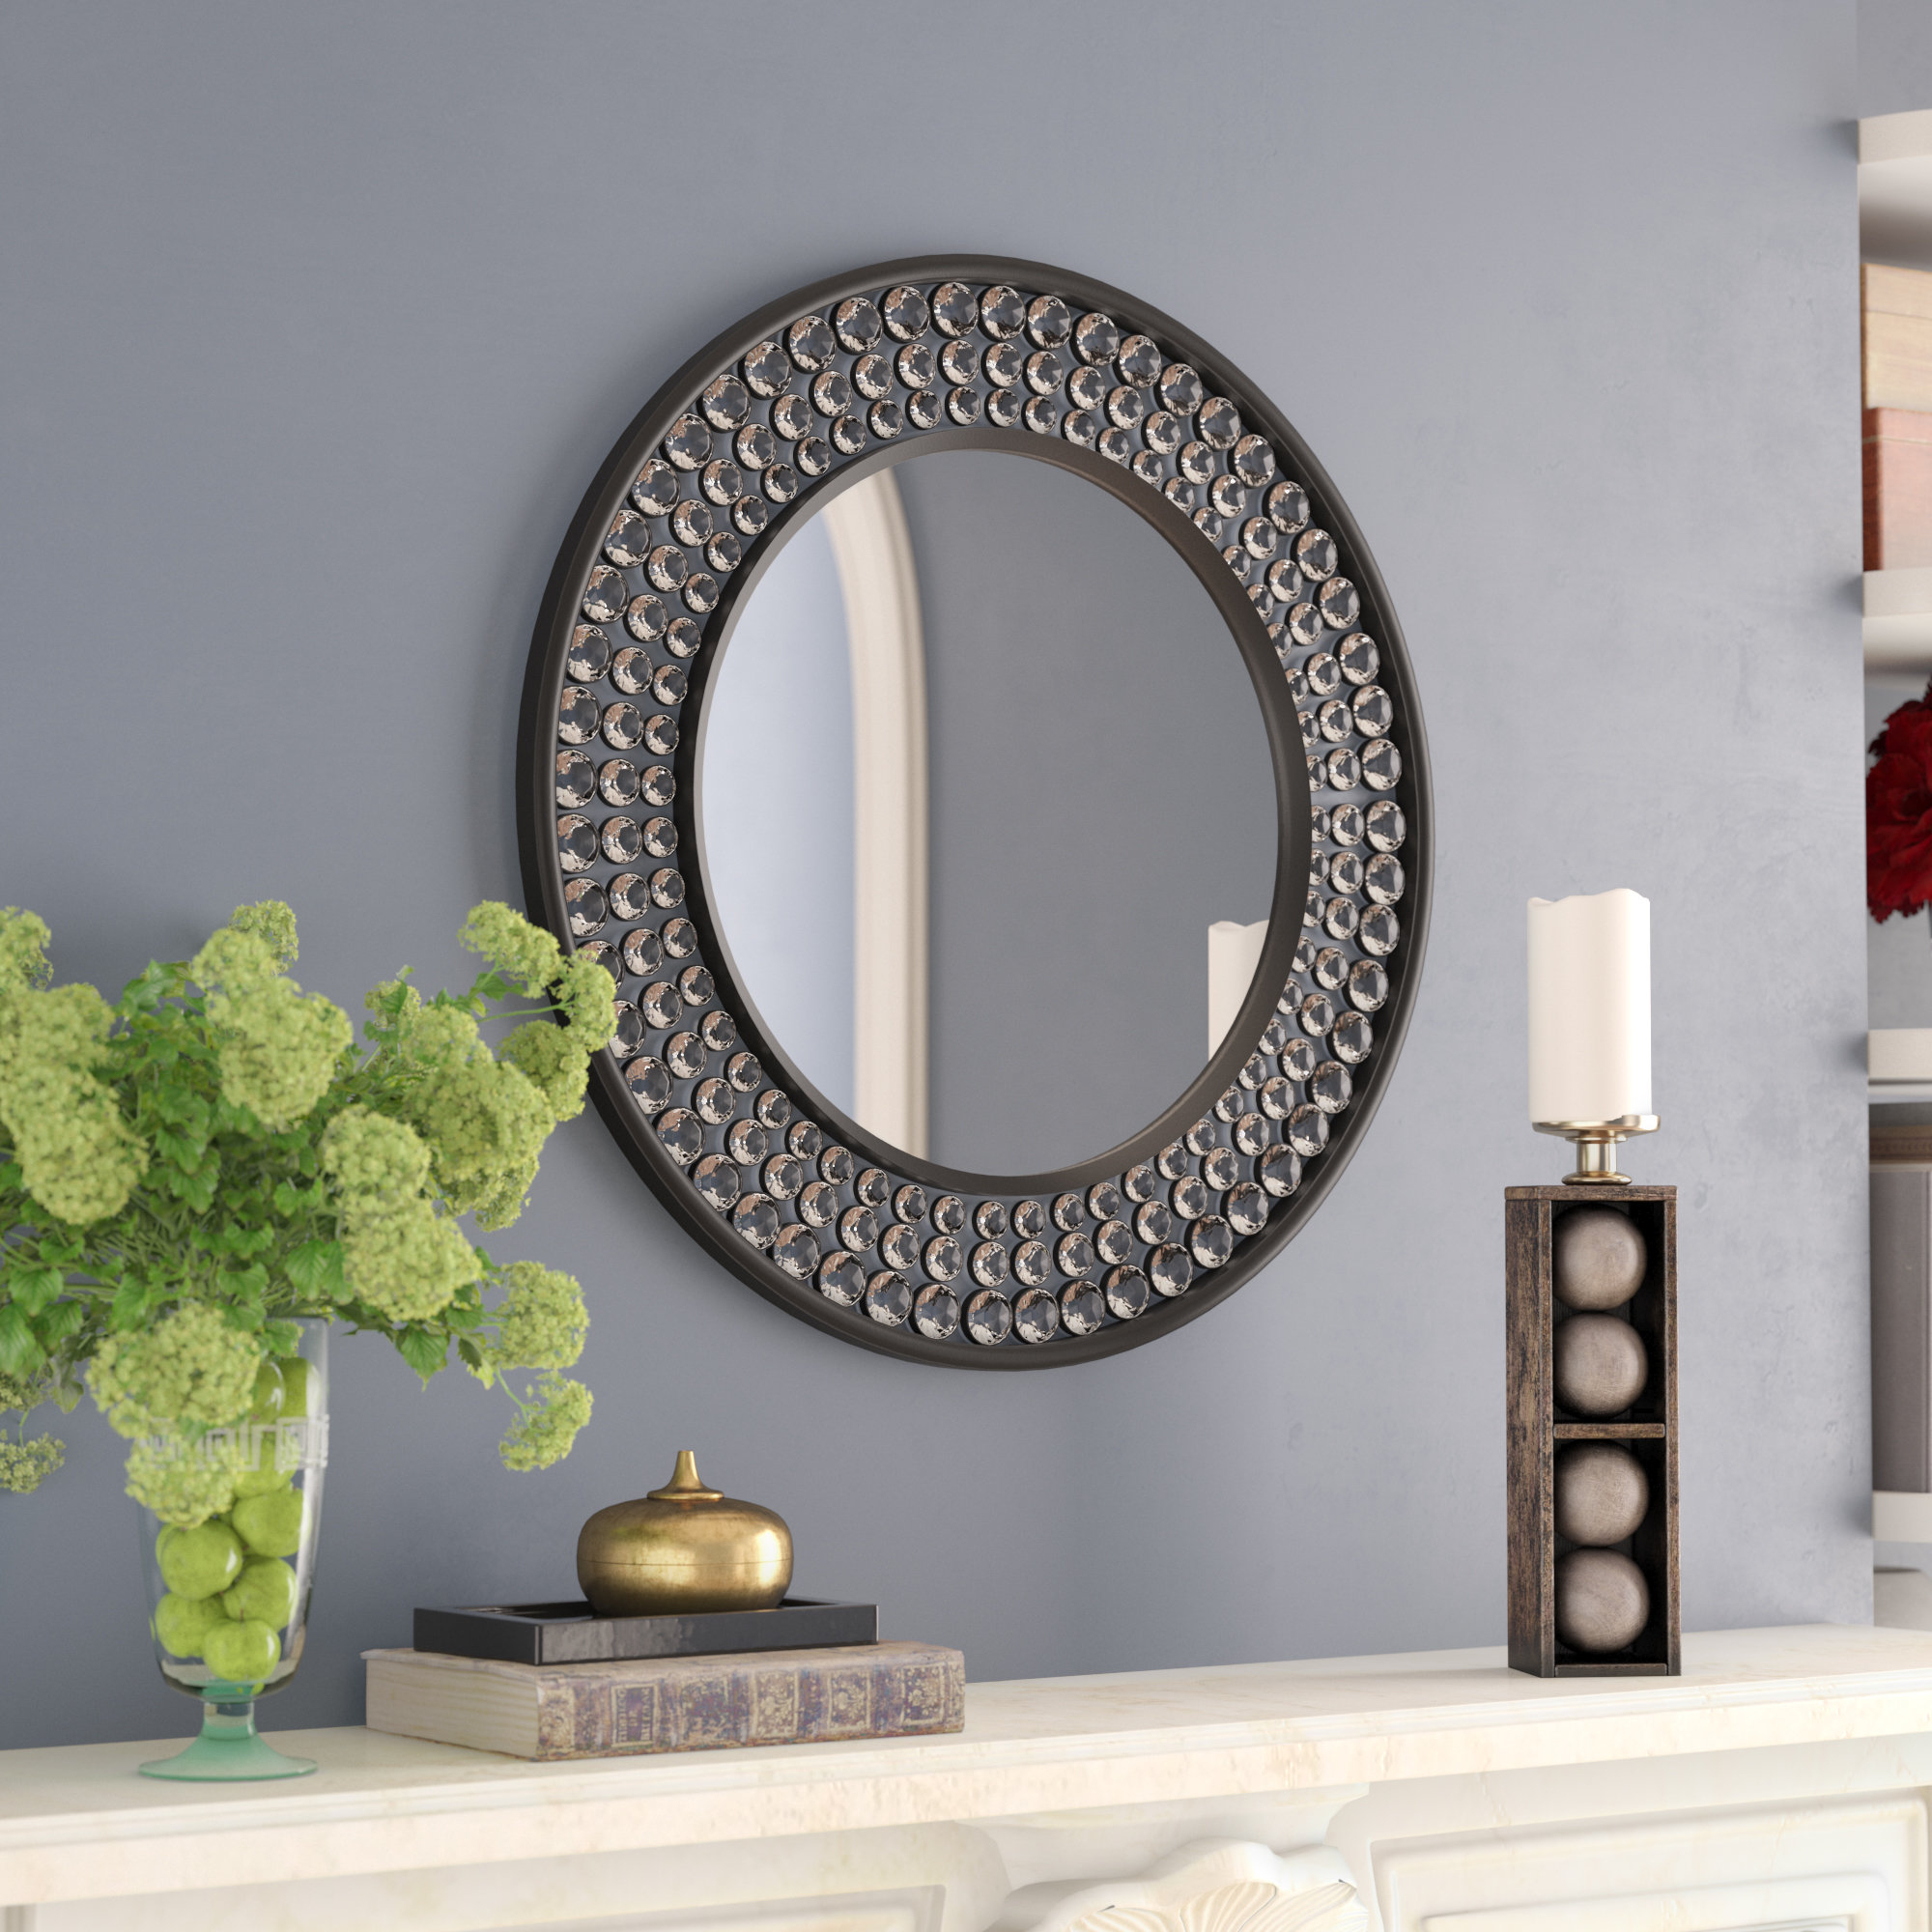 Valerian Jeweled Round Wall Mirror Pertaining To Fashionable Round Eclectic Accent Mirrors (View 15 of 20)